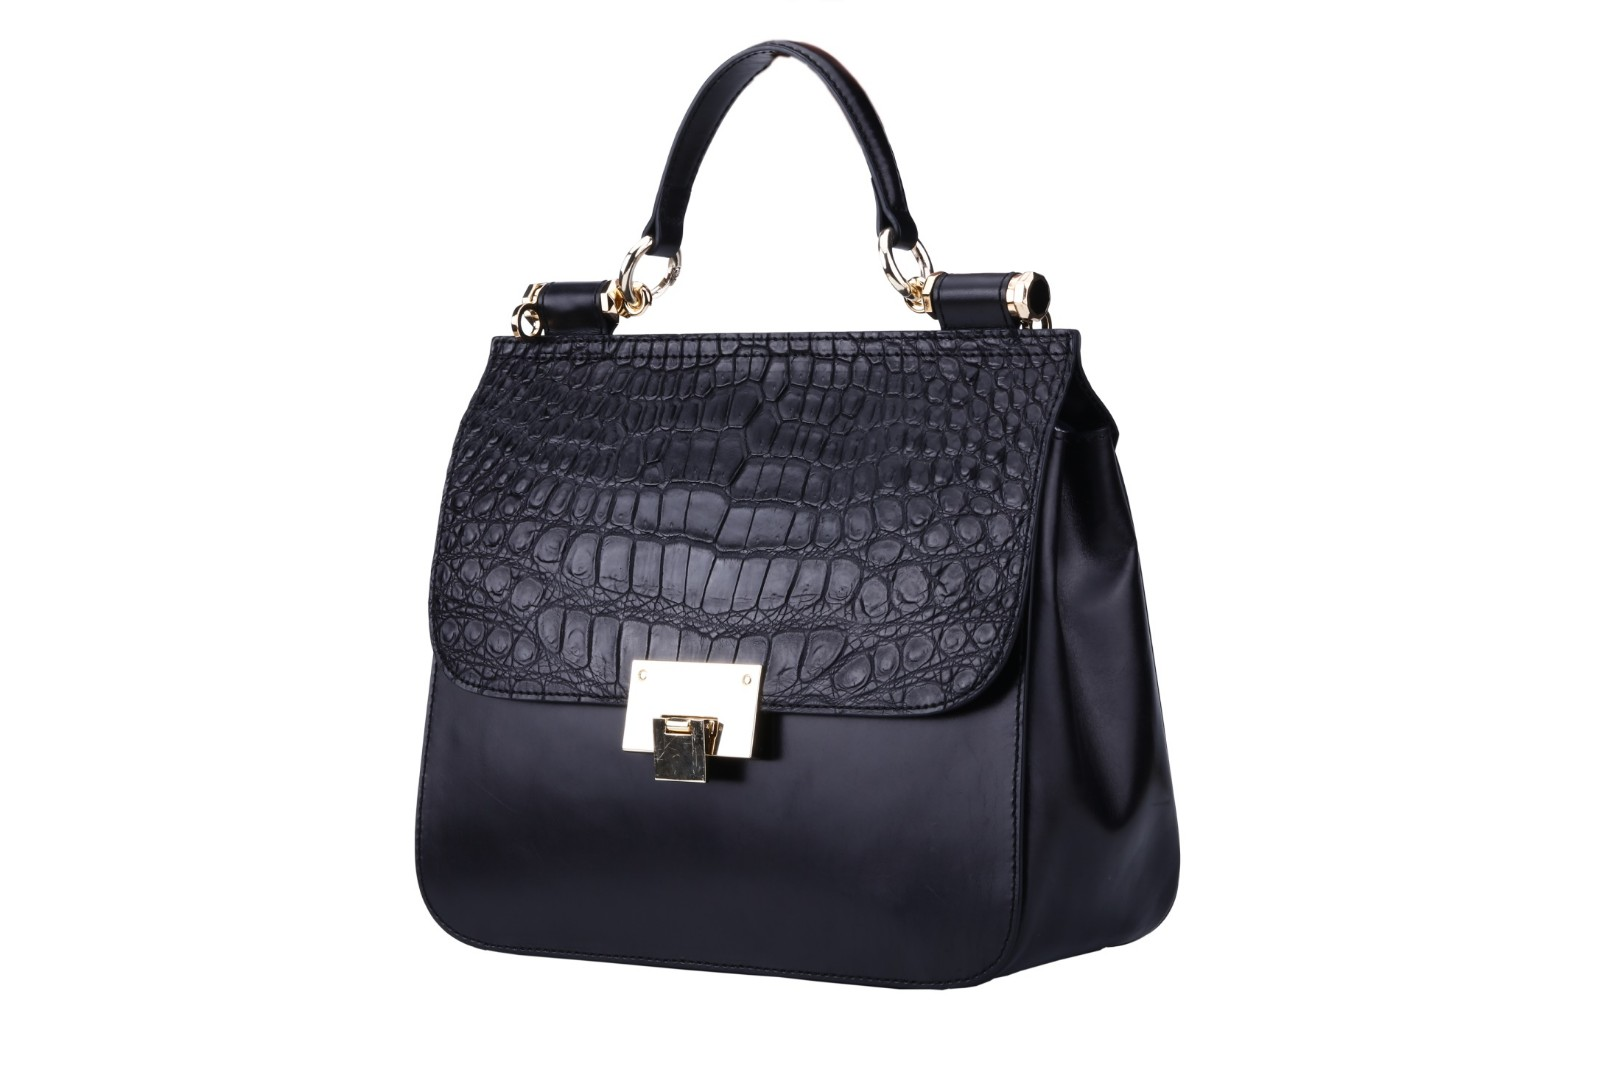 GF bags-Professional Ladies Bag Affordable Handbags From Gaofeng Bags-8